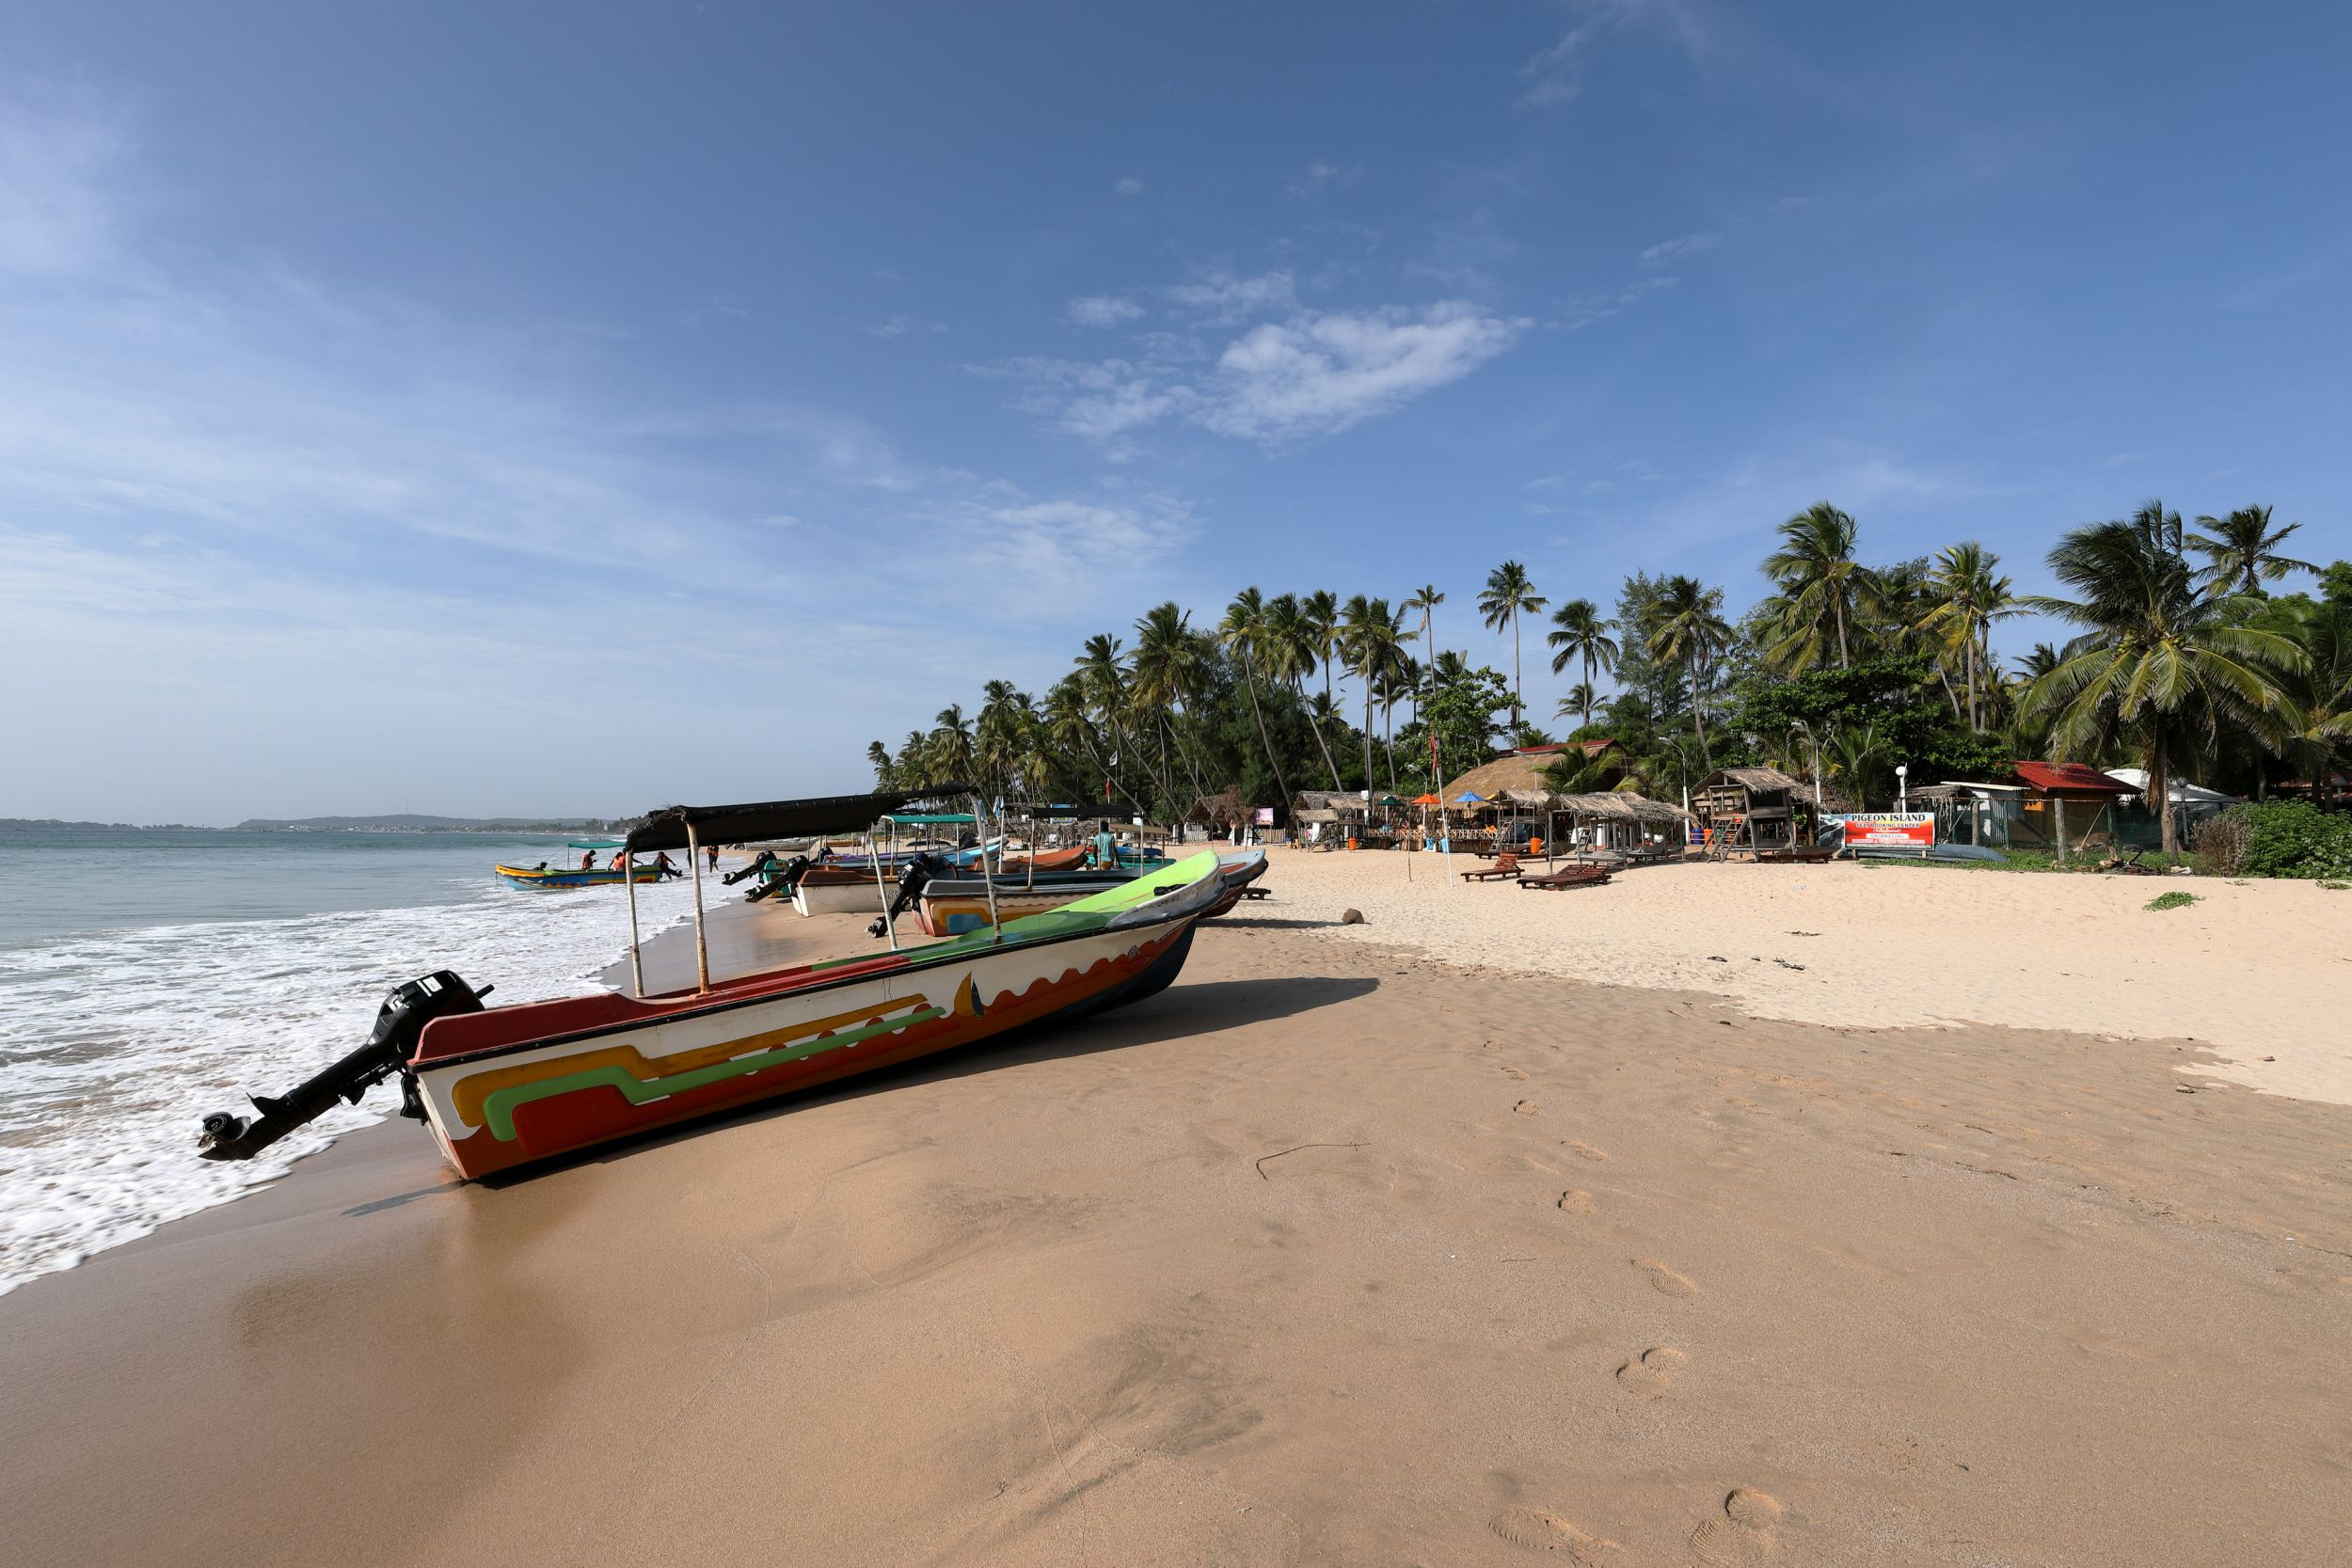 A beach in Trincomalee (Thinkstock/PA)